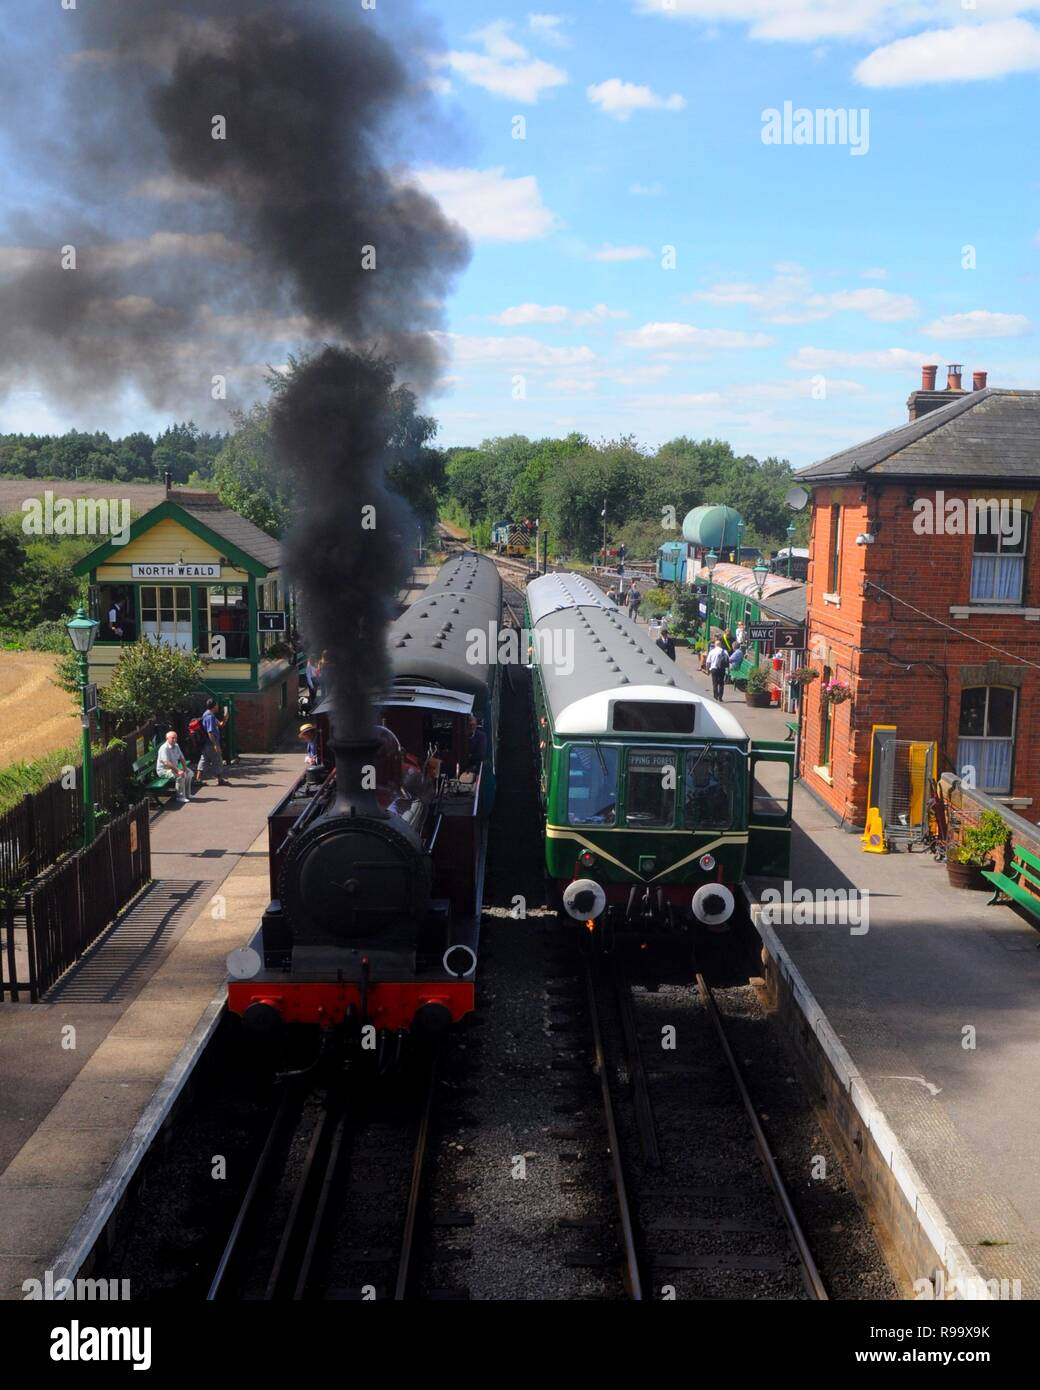 1898 Metropolitan Railway E Class 'Metropolitan Railway No.1' (l) and Class 117 DMU M51384 (r), North Weald Station, Epping Ongar Railway, Essex, UK. - Stock Image